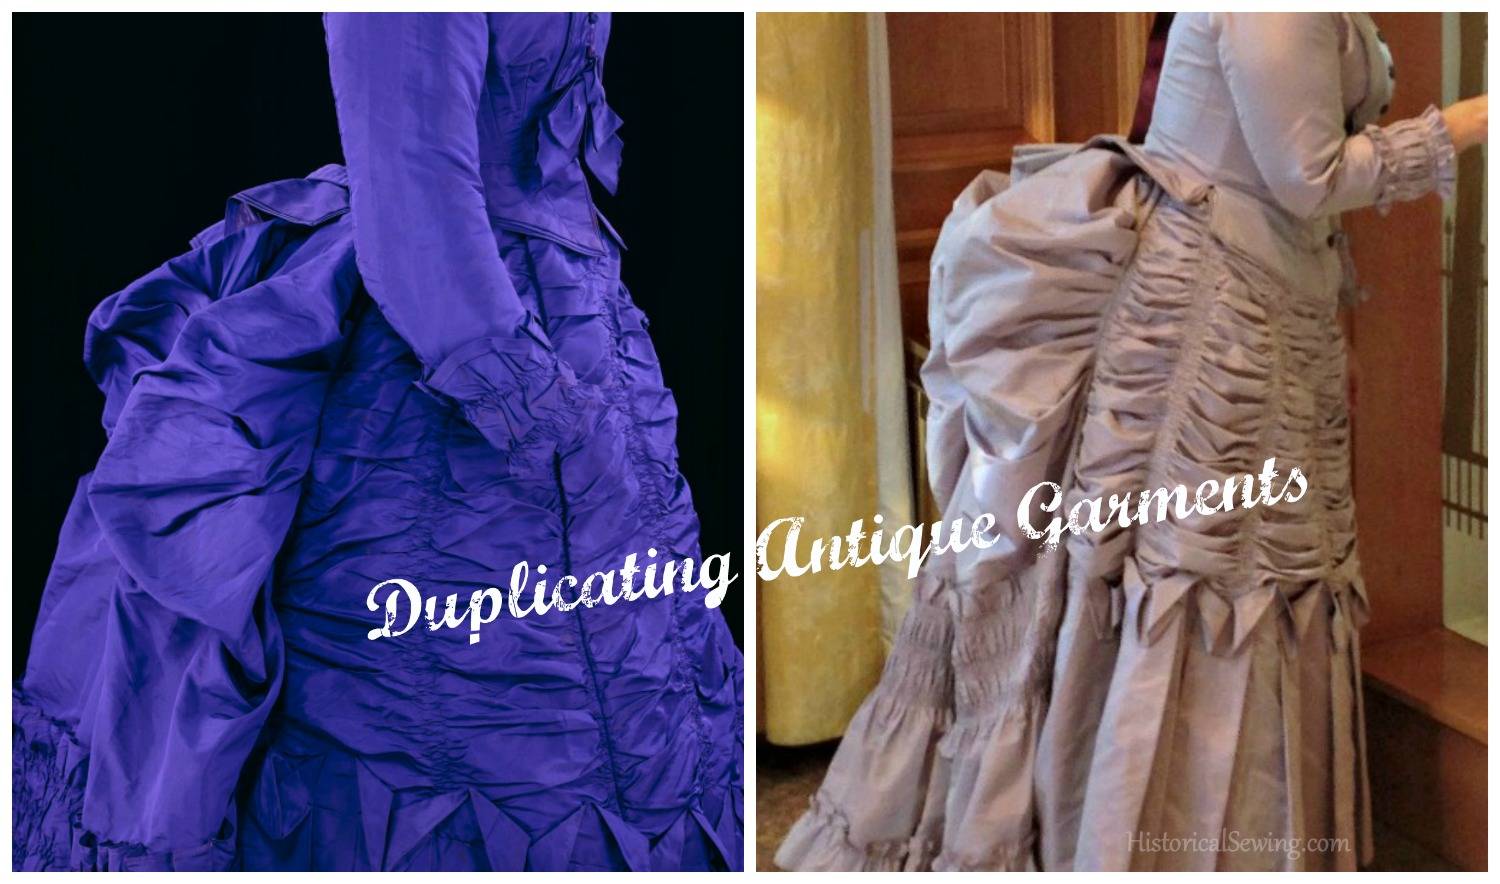 Duplicating Antique Garments